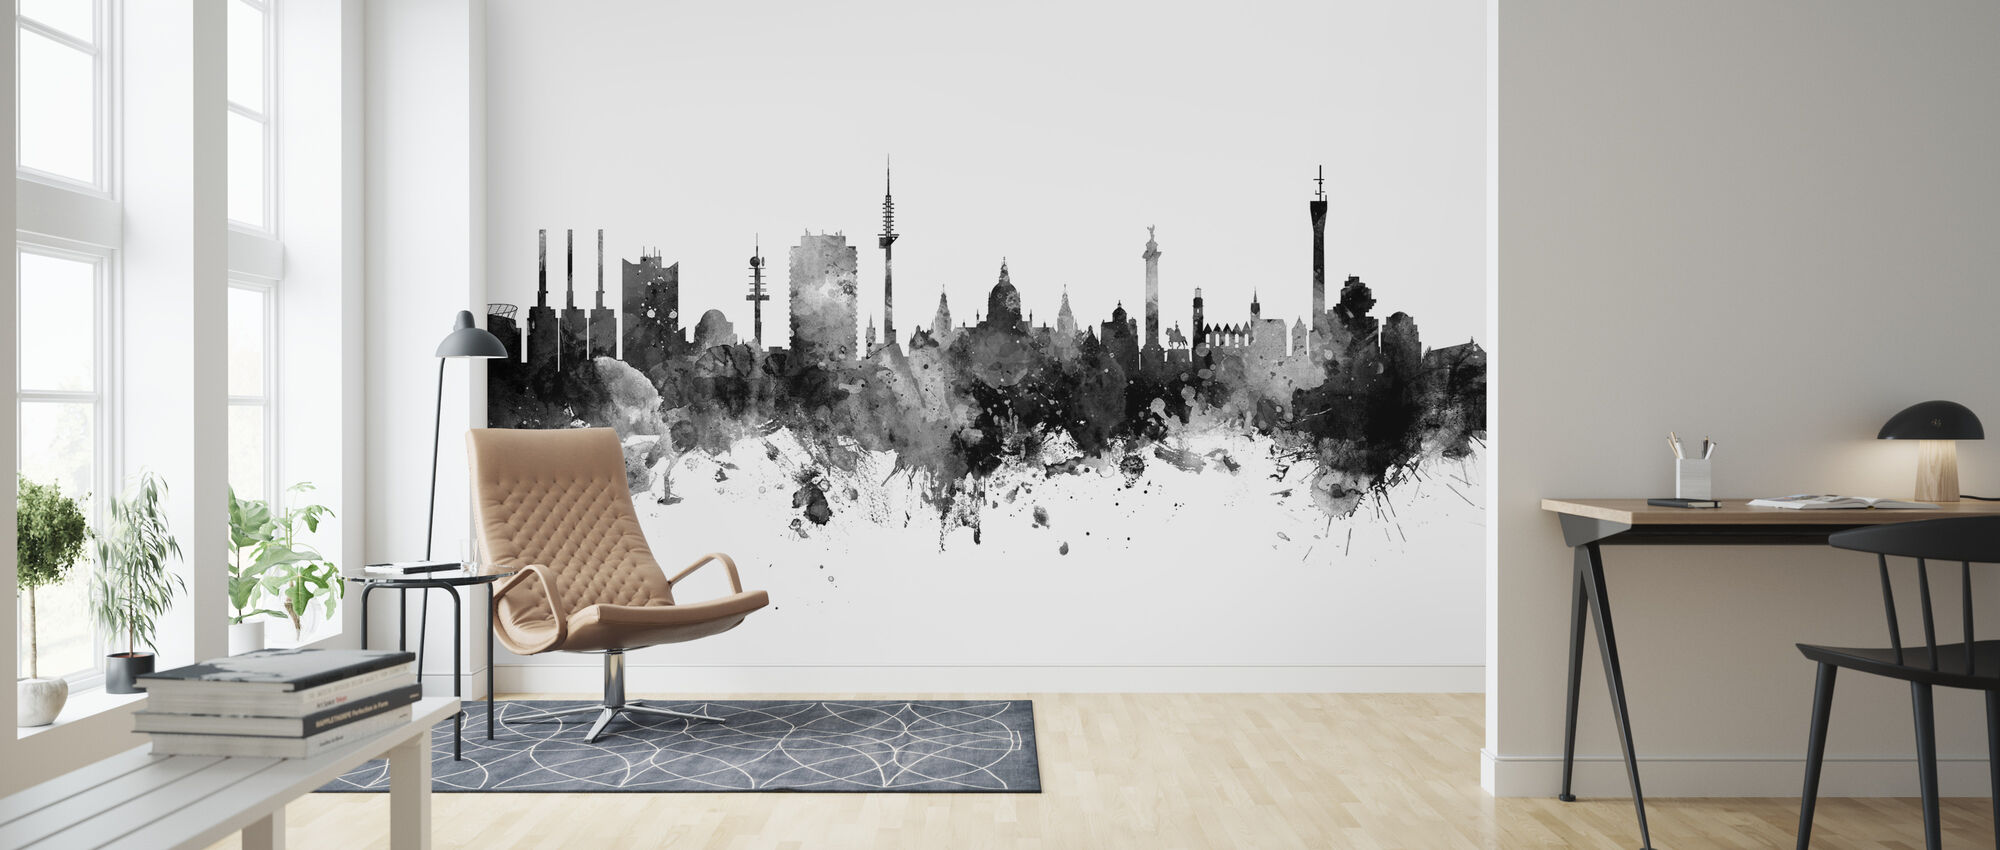 Hannover Skyline Black - Wallpaper - Living Room